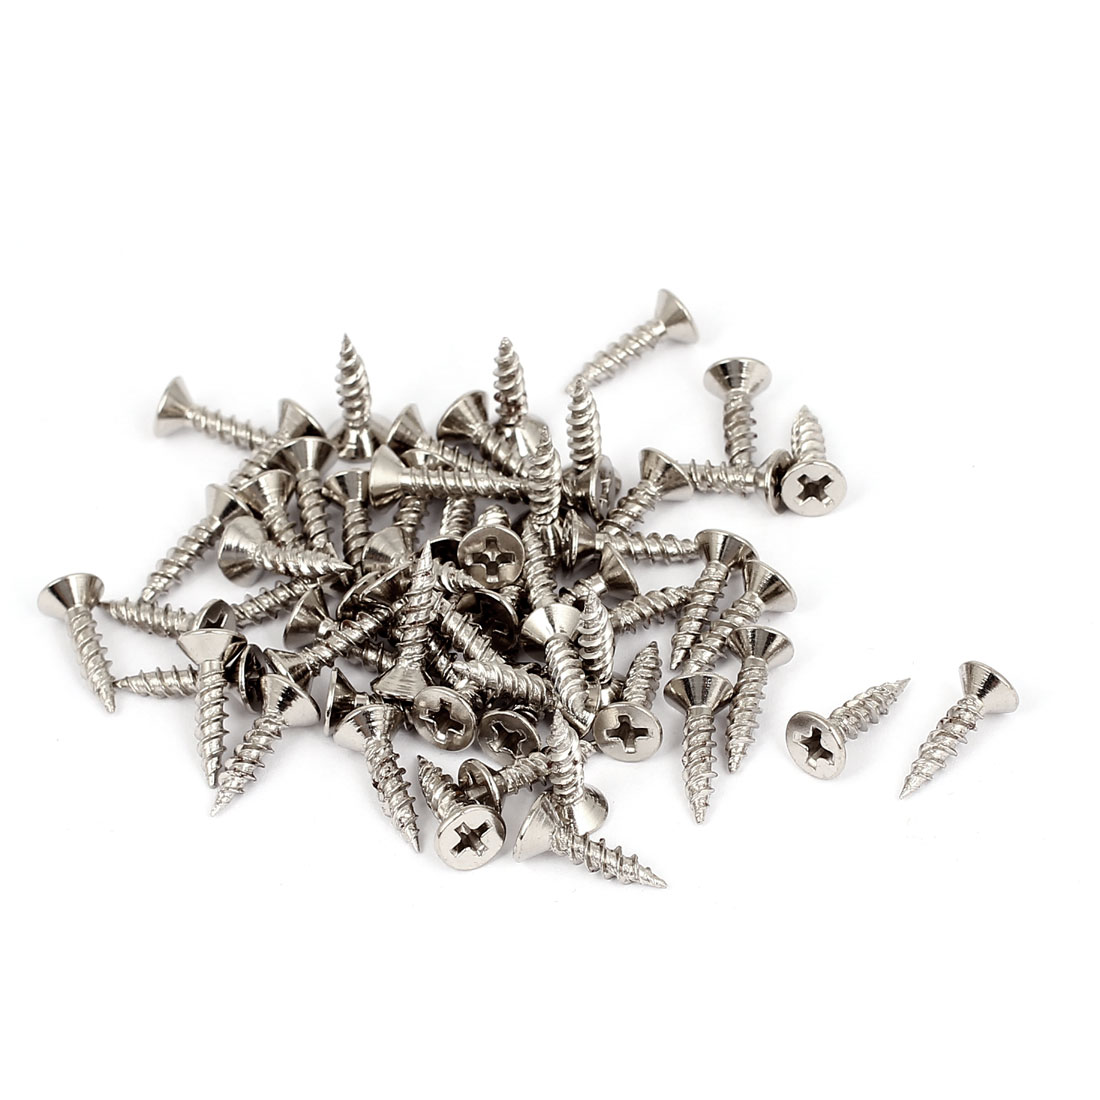 3.5mmx16mm Phillips Flat Head Countersunk Self Tapping Drilling Screws 60pcs